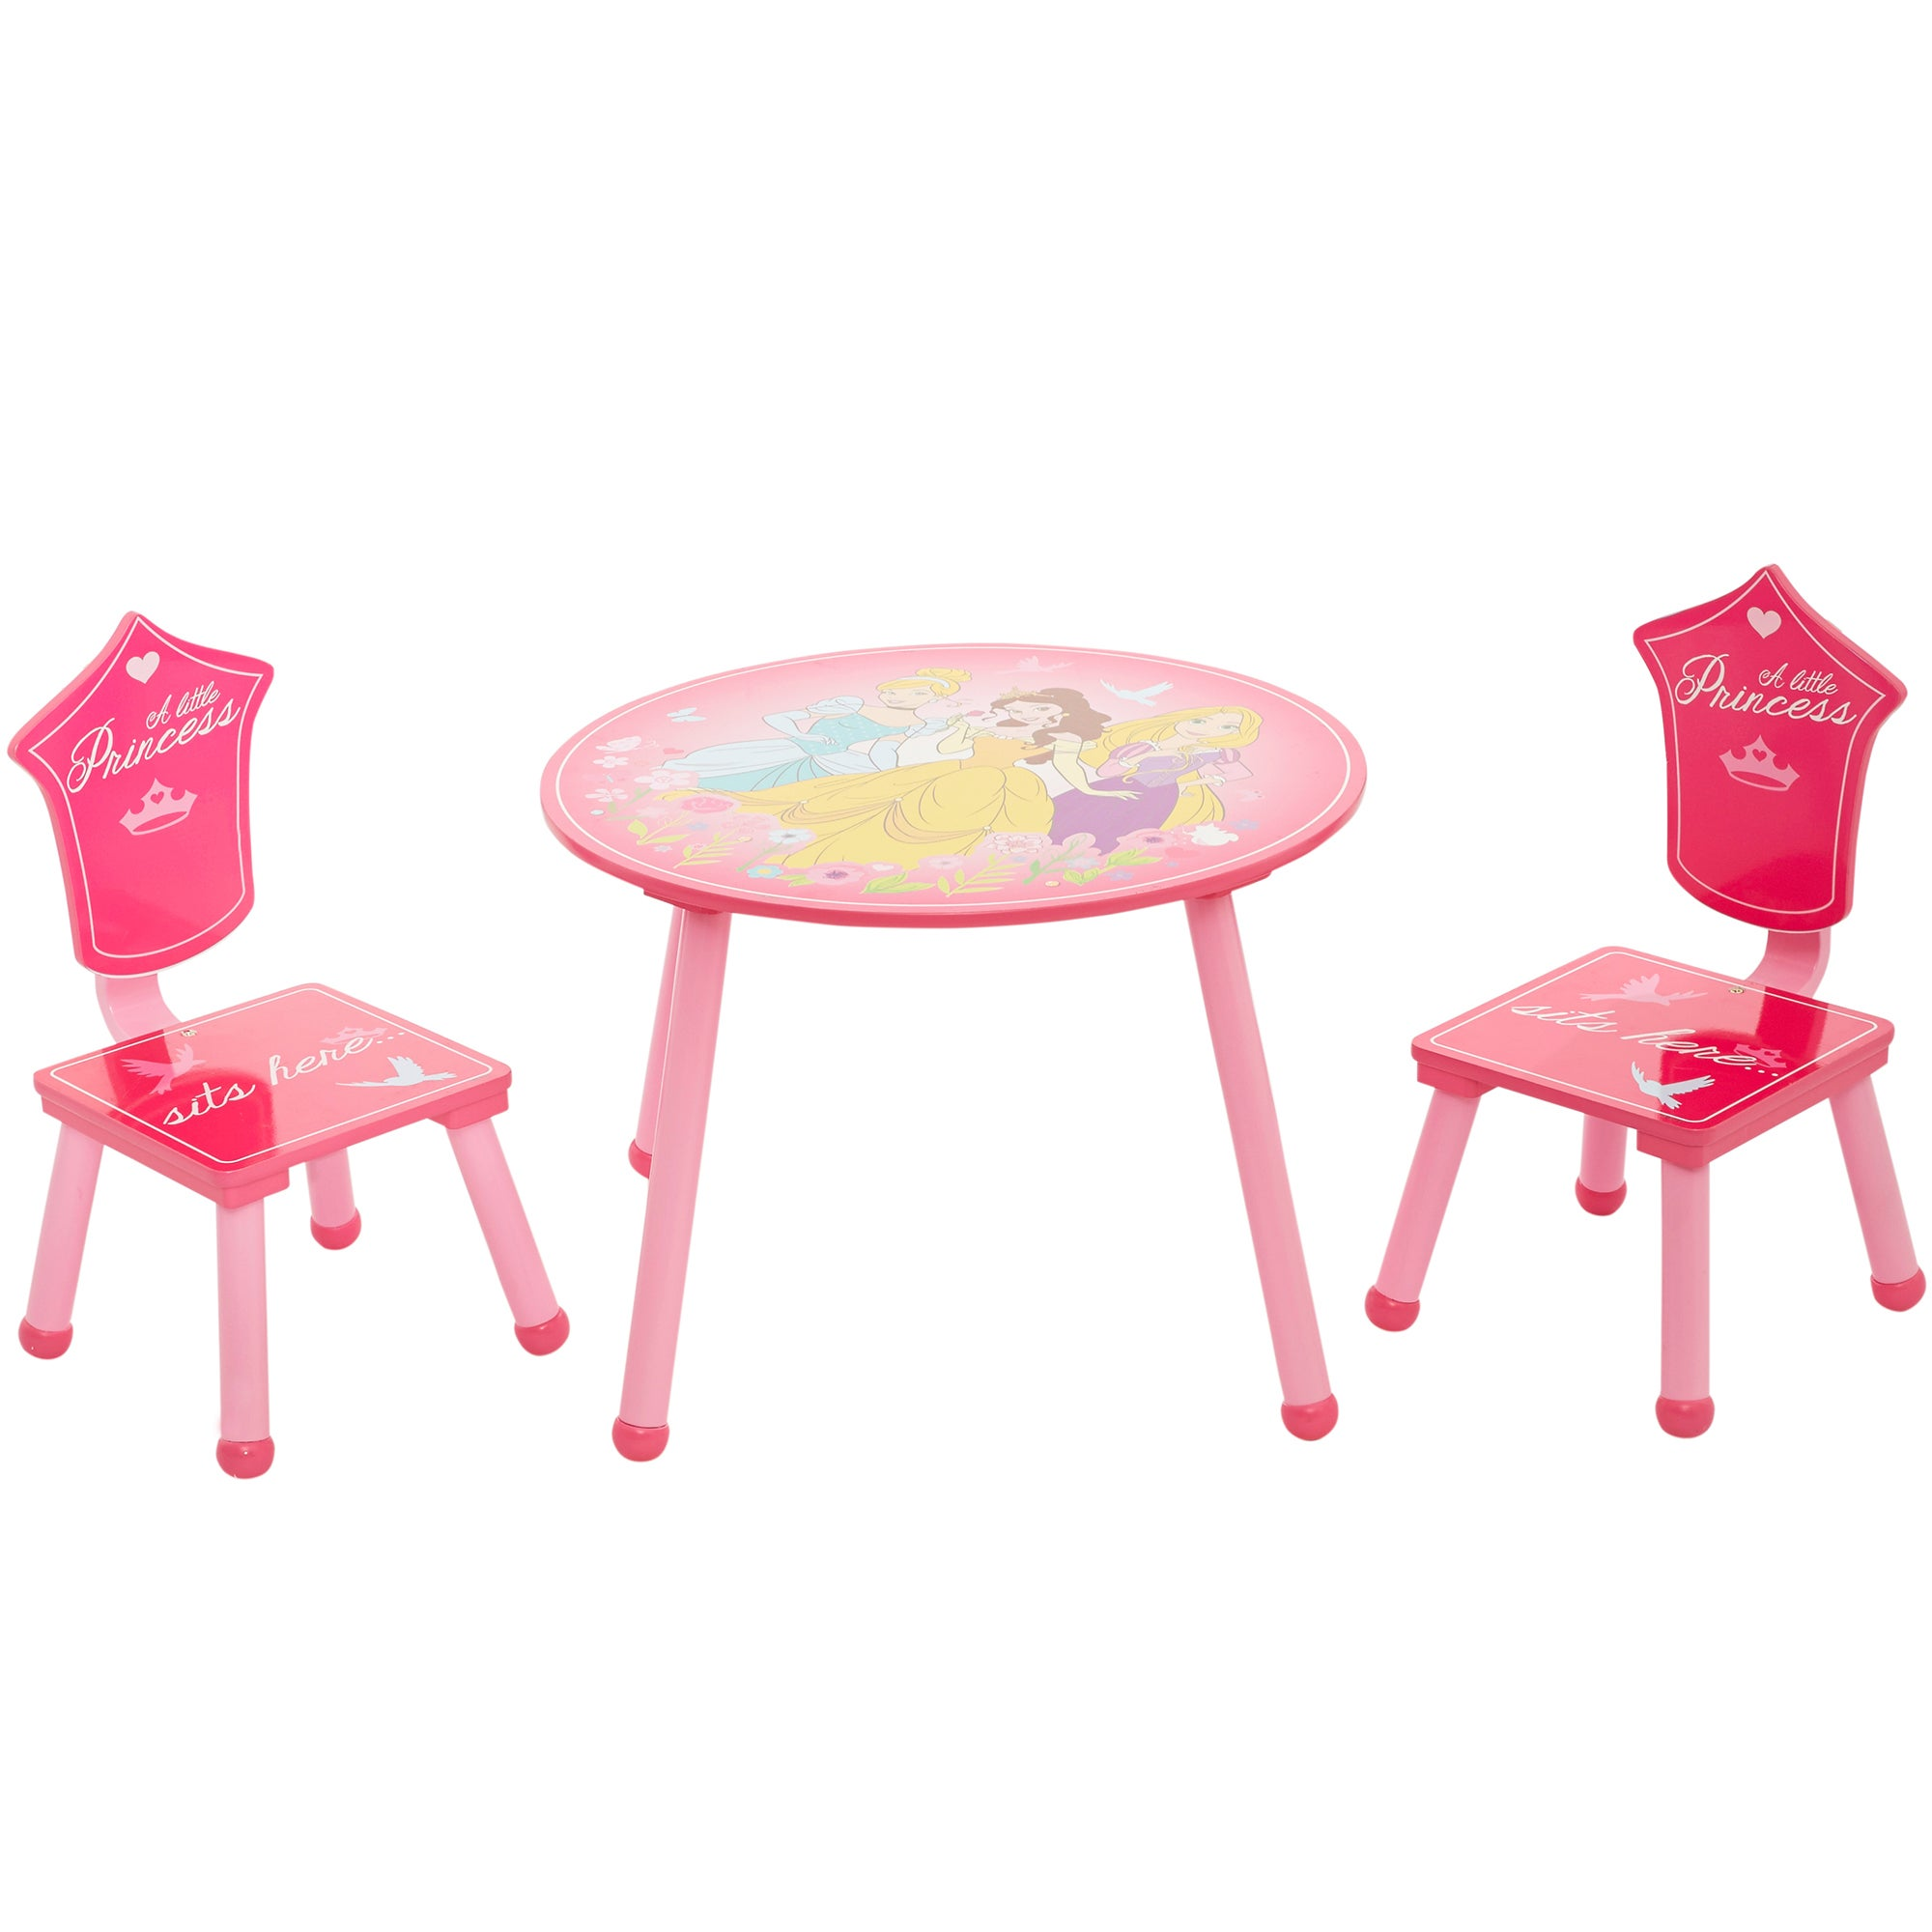 Buy Cheap Pink Chairs Compare Furniture Prices For Best UK Deals